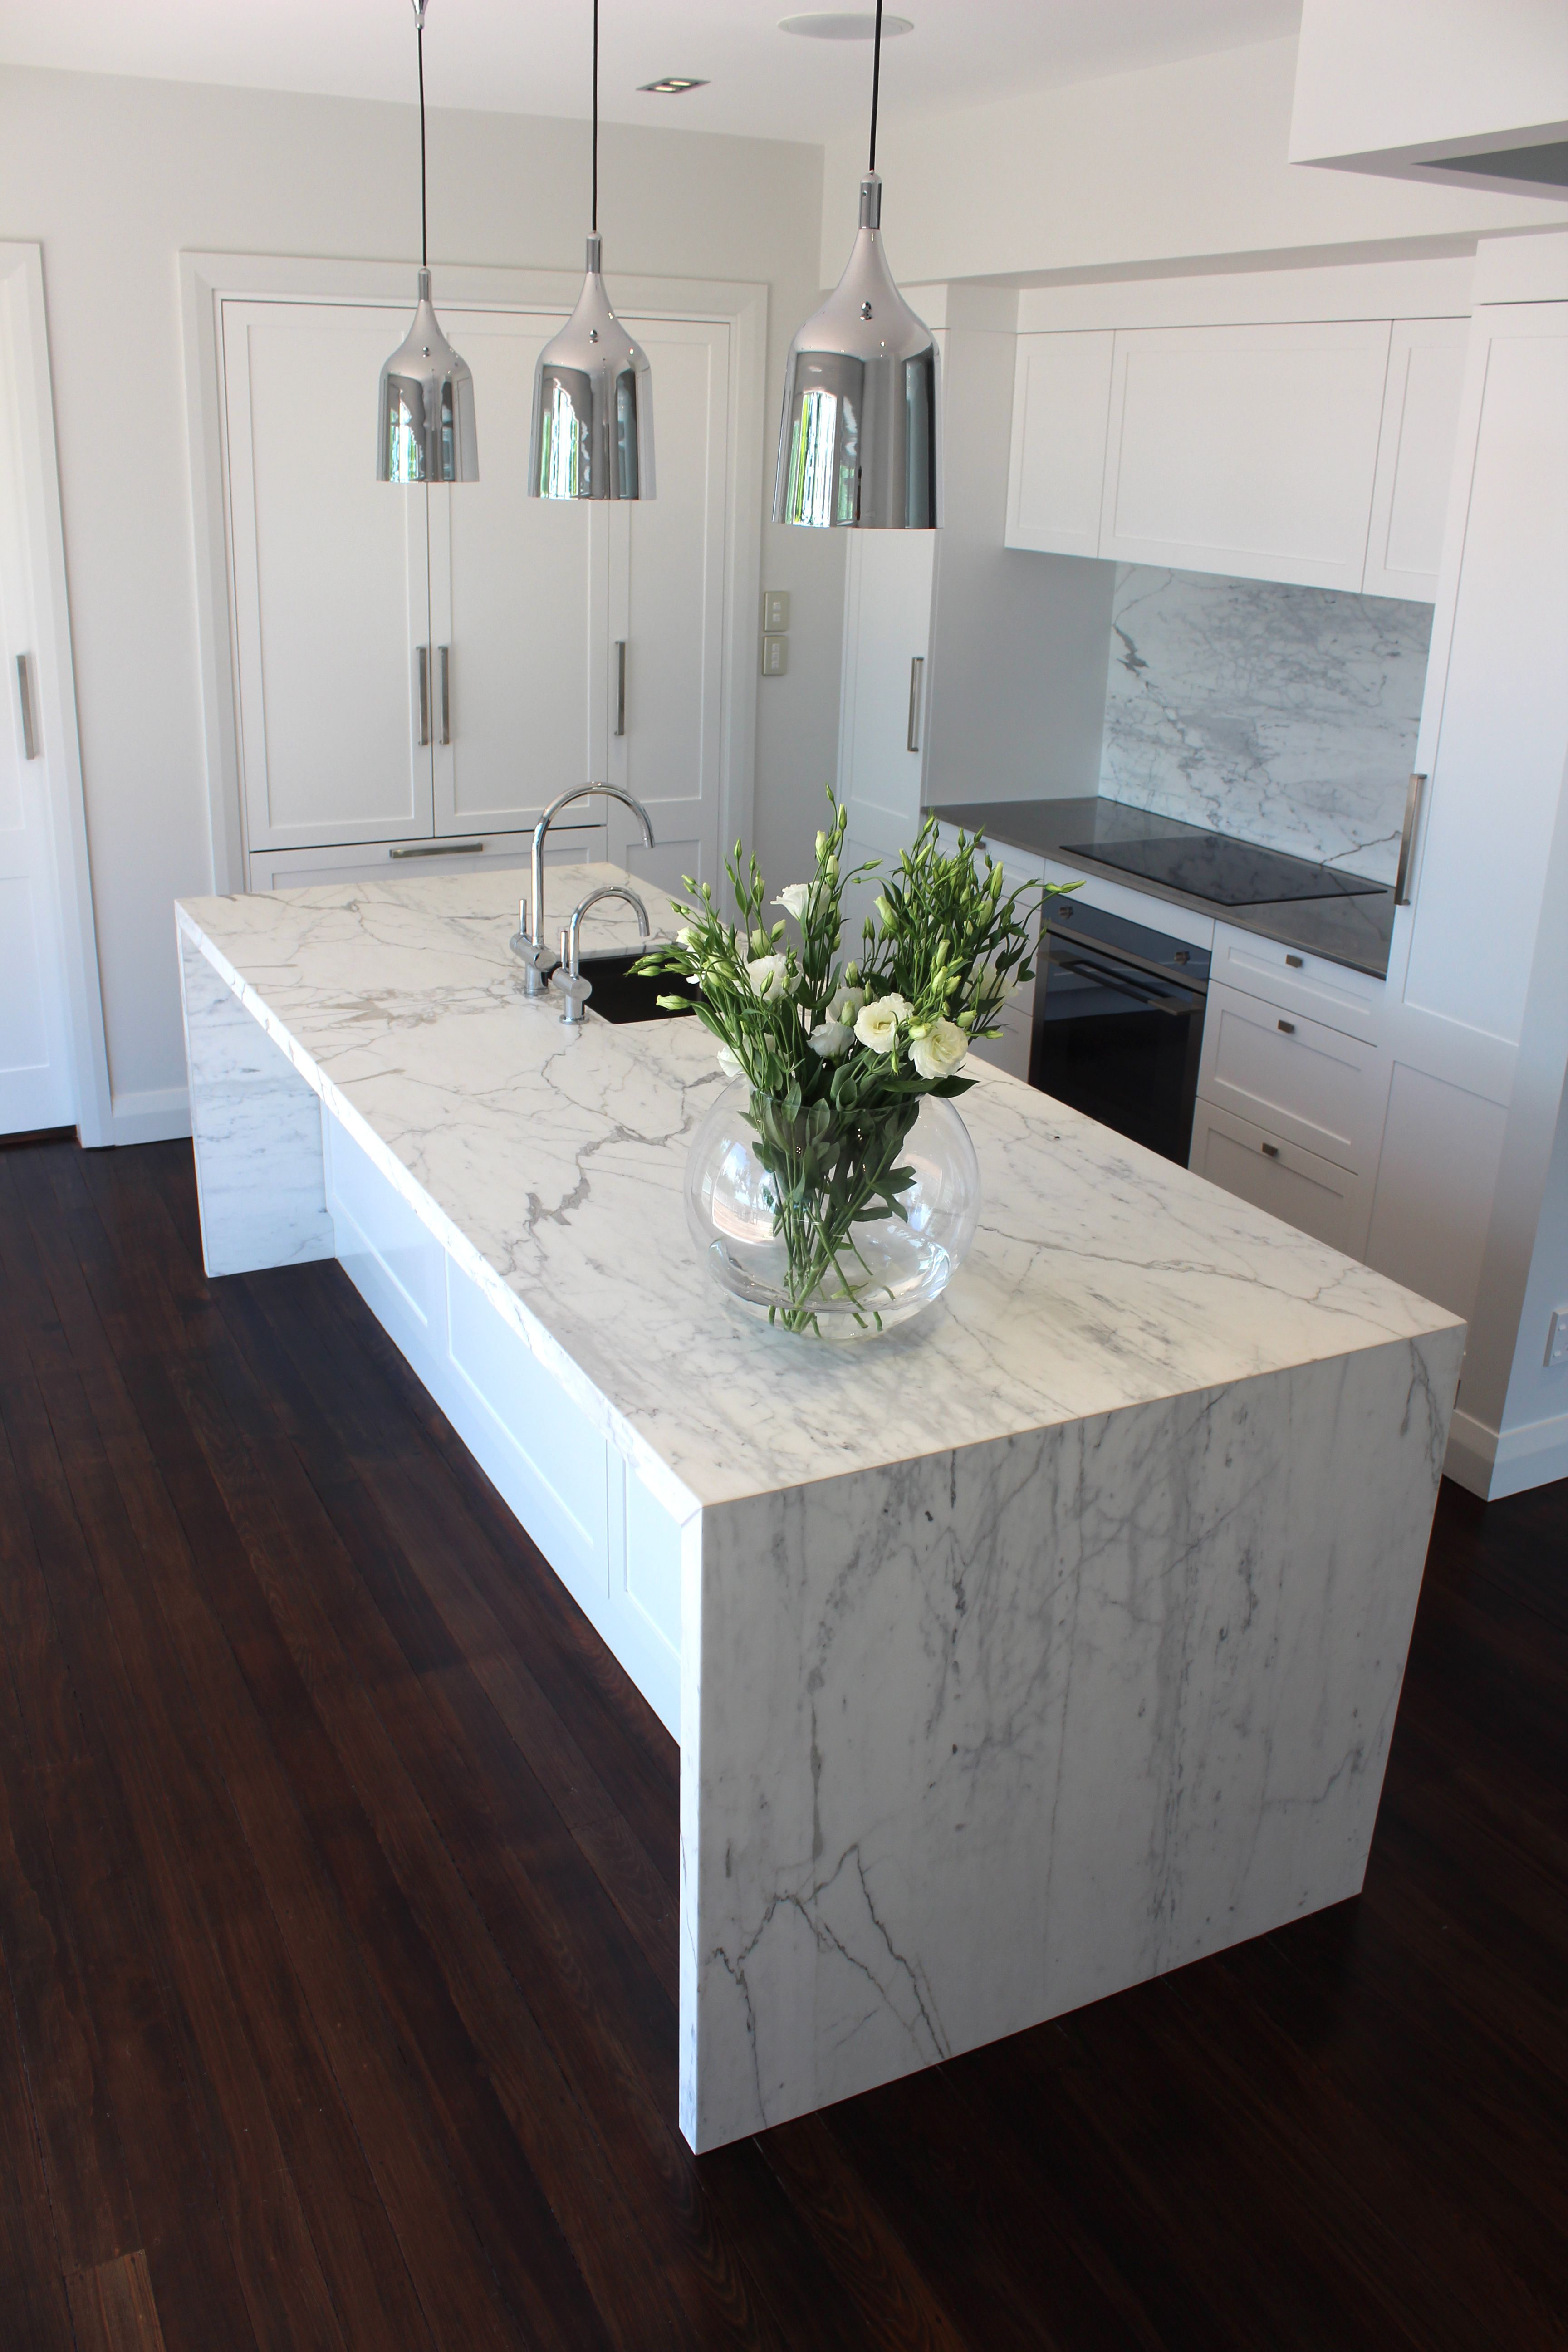 my kitchen - carrara marble waterfall benchtop and splashback